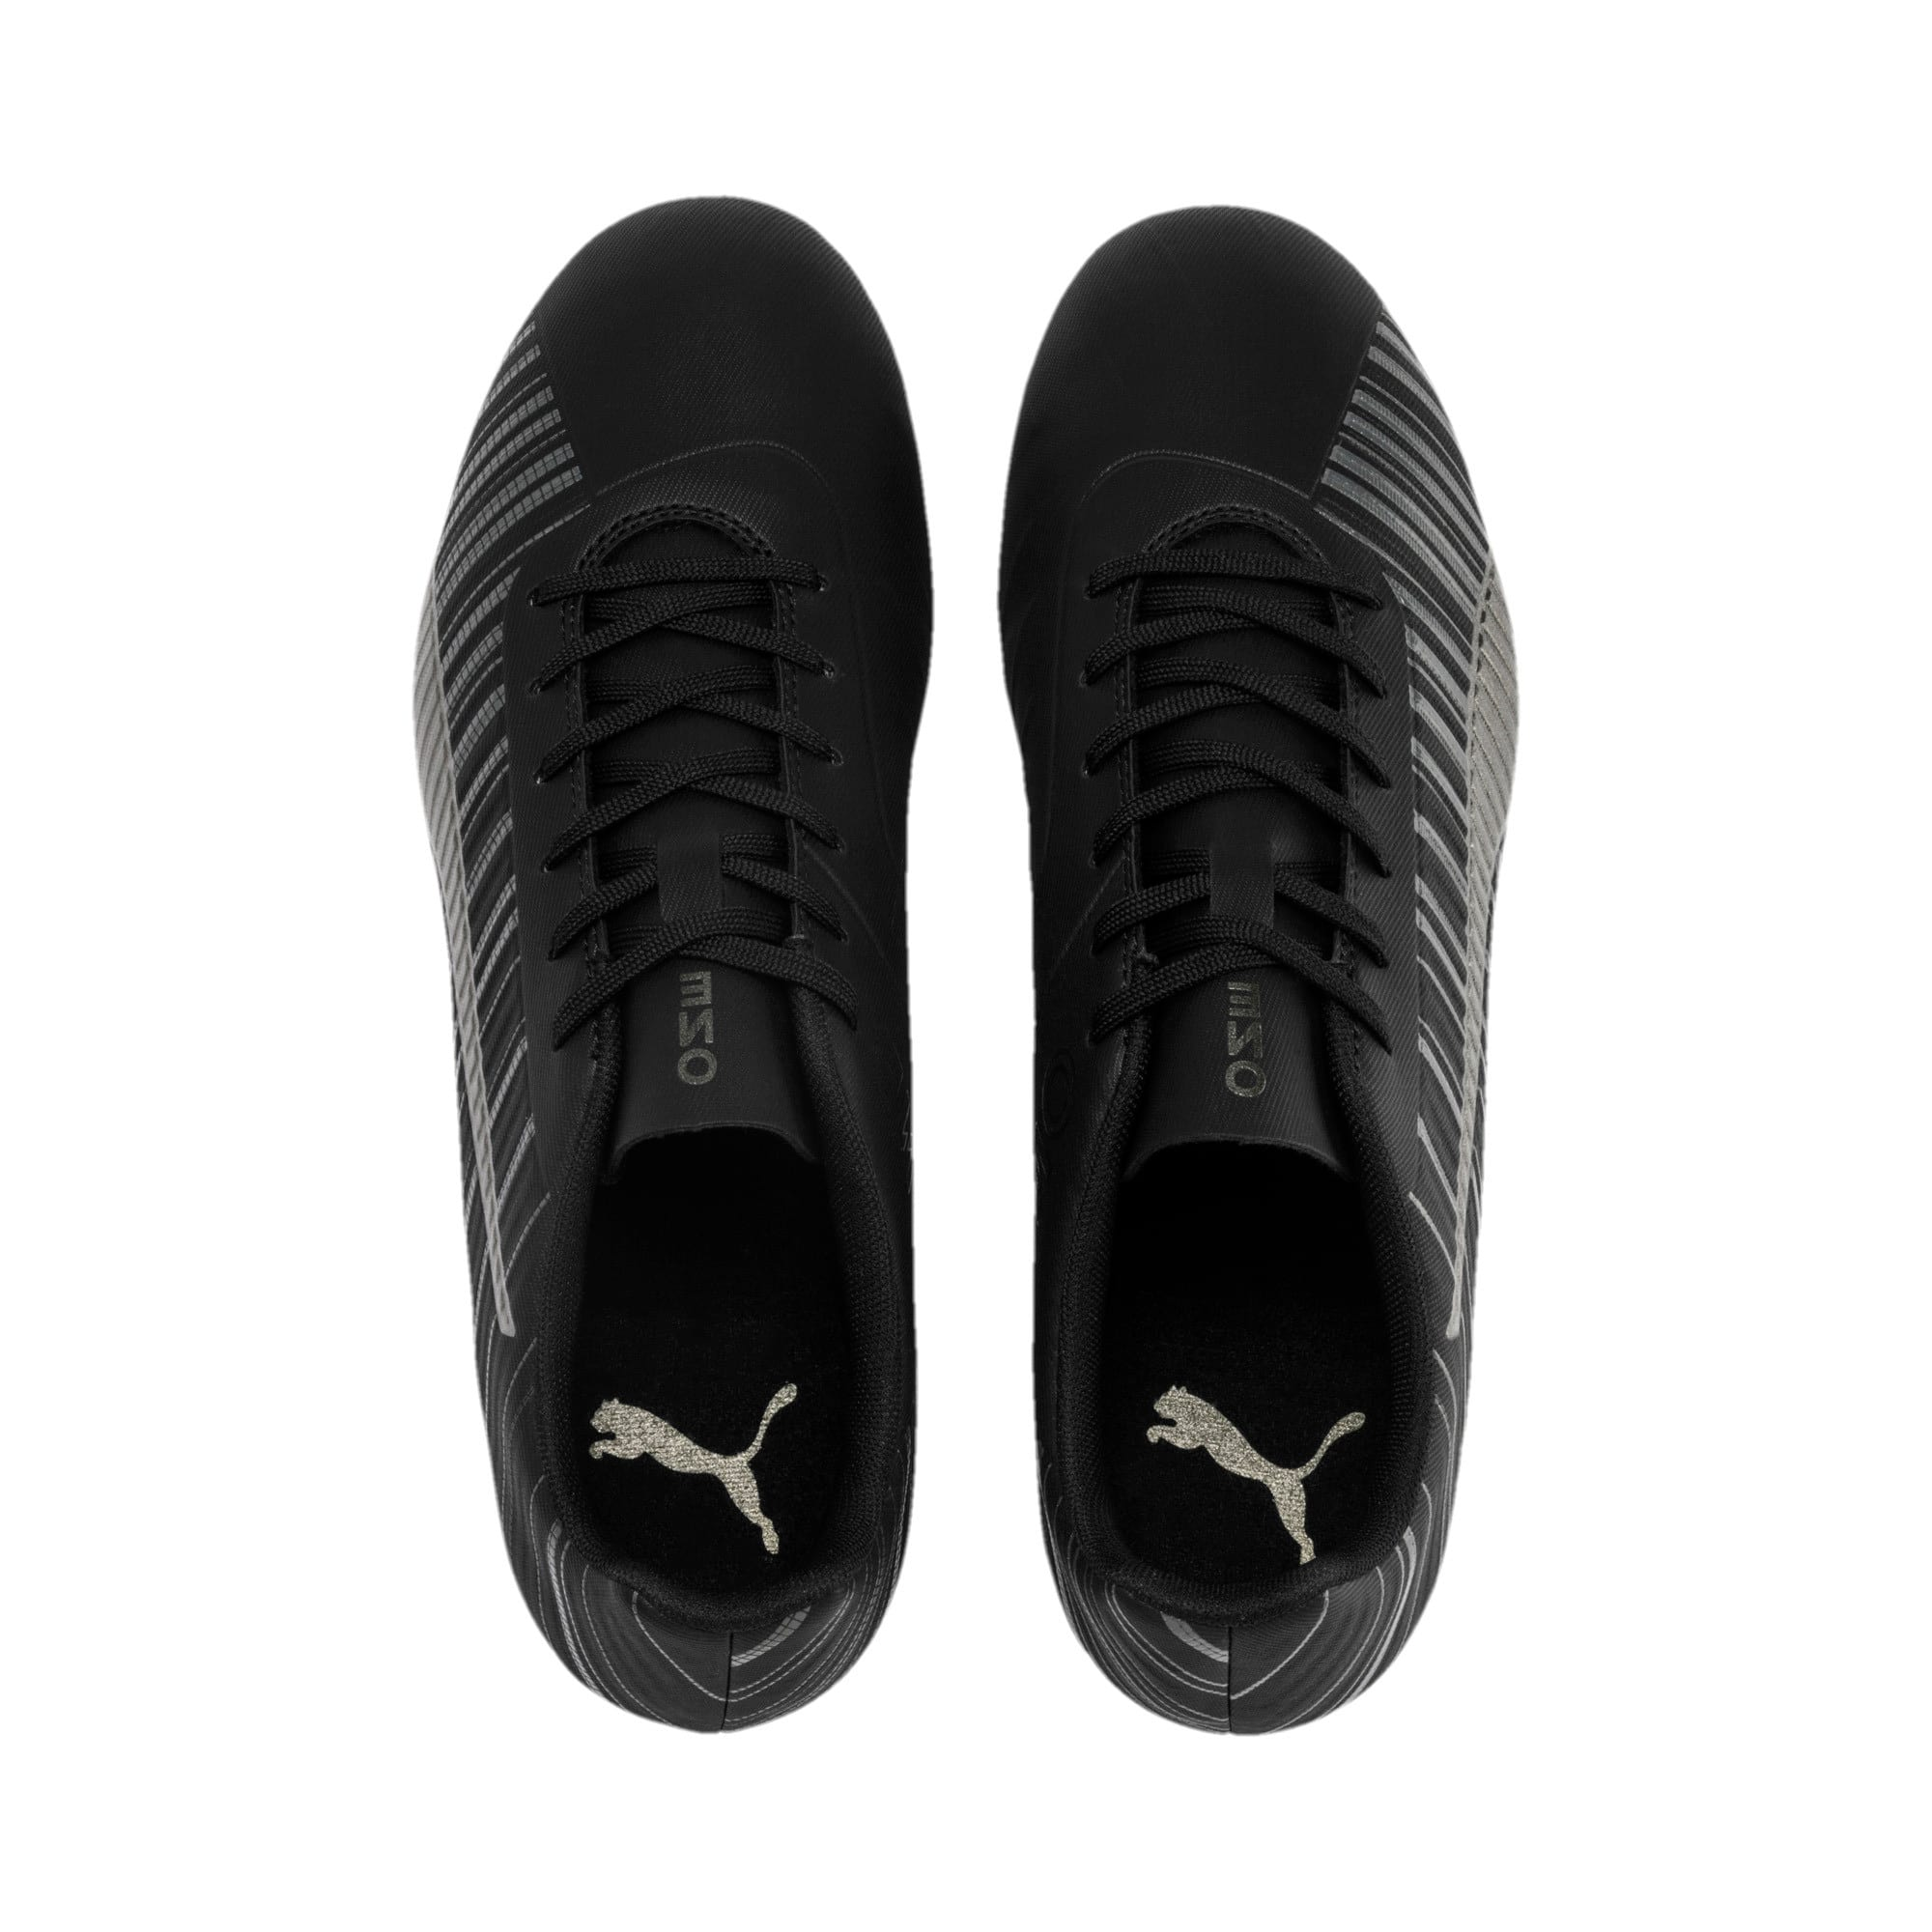 Thumbnail 7 of PUMA ONE 5.4 Men's FG/AG Football Boots, Black-Black-Puma Aged Silver, medium